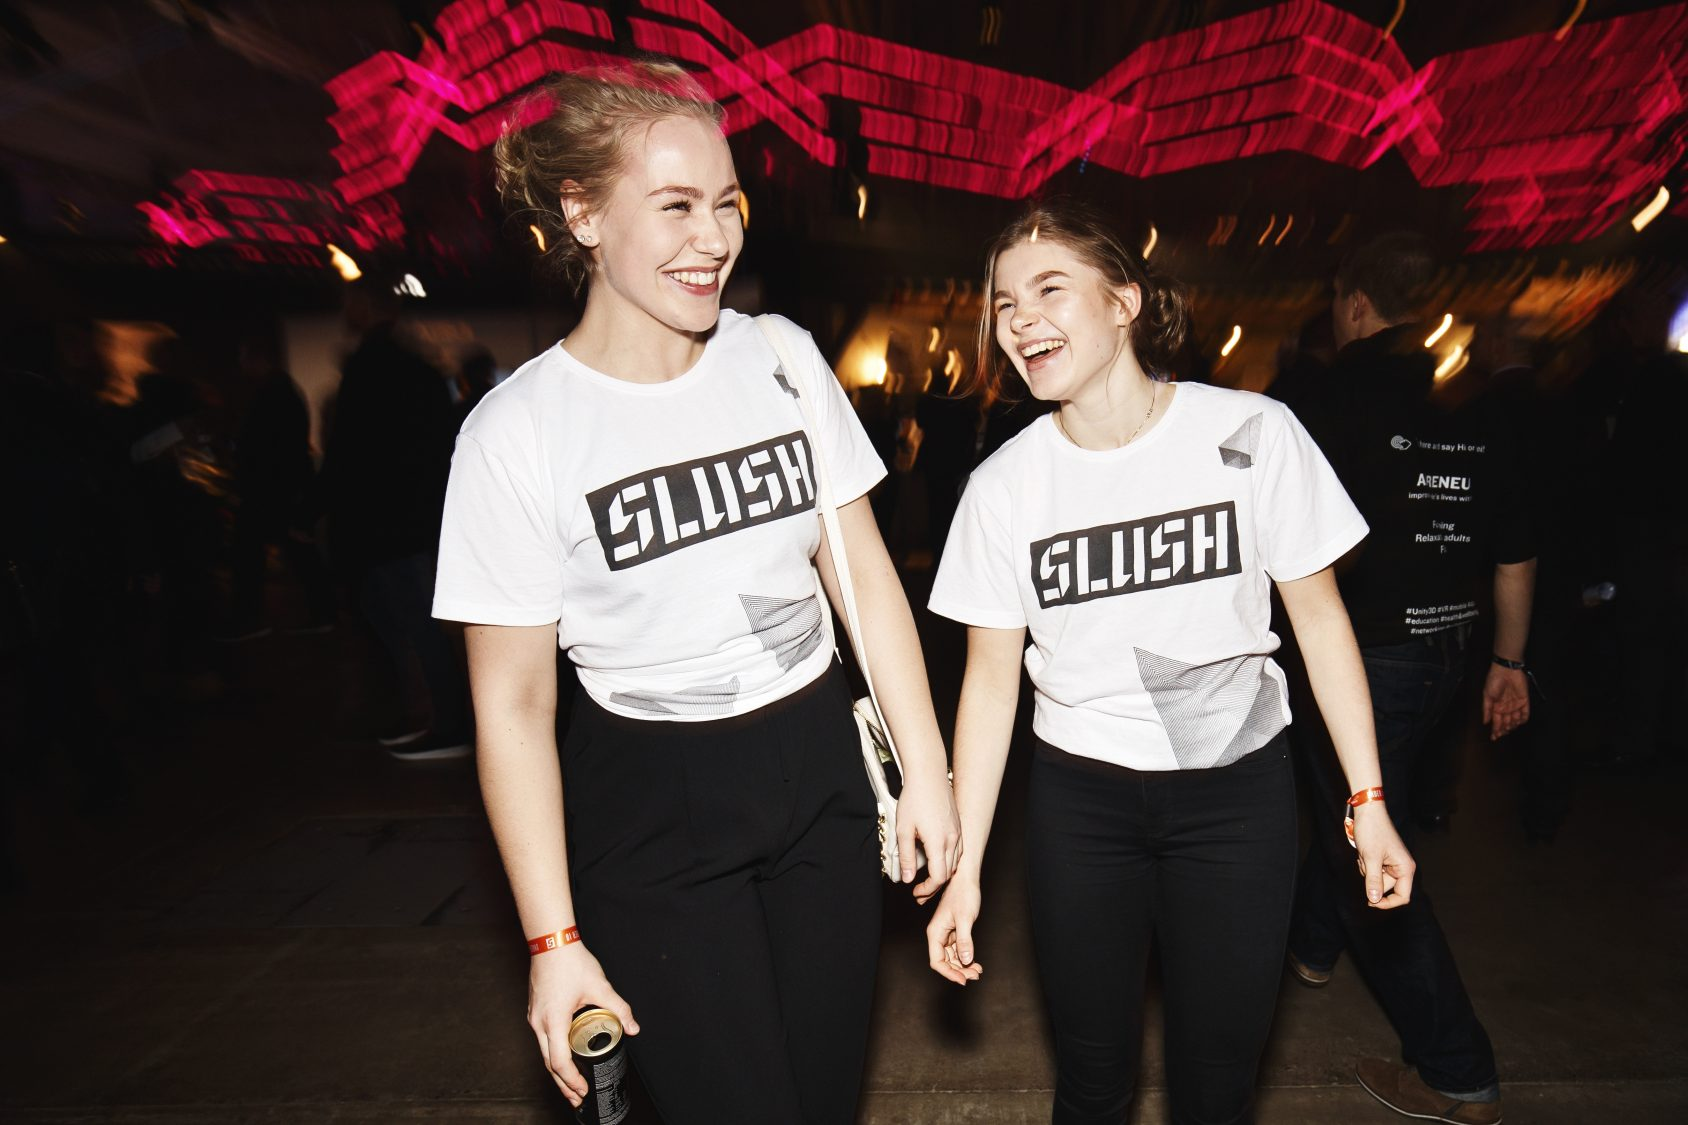 """Slush owes a lot to its volunteers. Kaisa Kuitunen and Aava Harju work at the cloakroom and the coffee and water station as part of their school course. Their studies at a Helsinki Upper Secondary School focus on international business. """"We're learning a lot here and seeing all sorts of relevant things,"""" they say."""